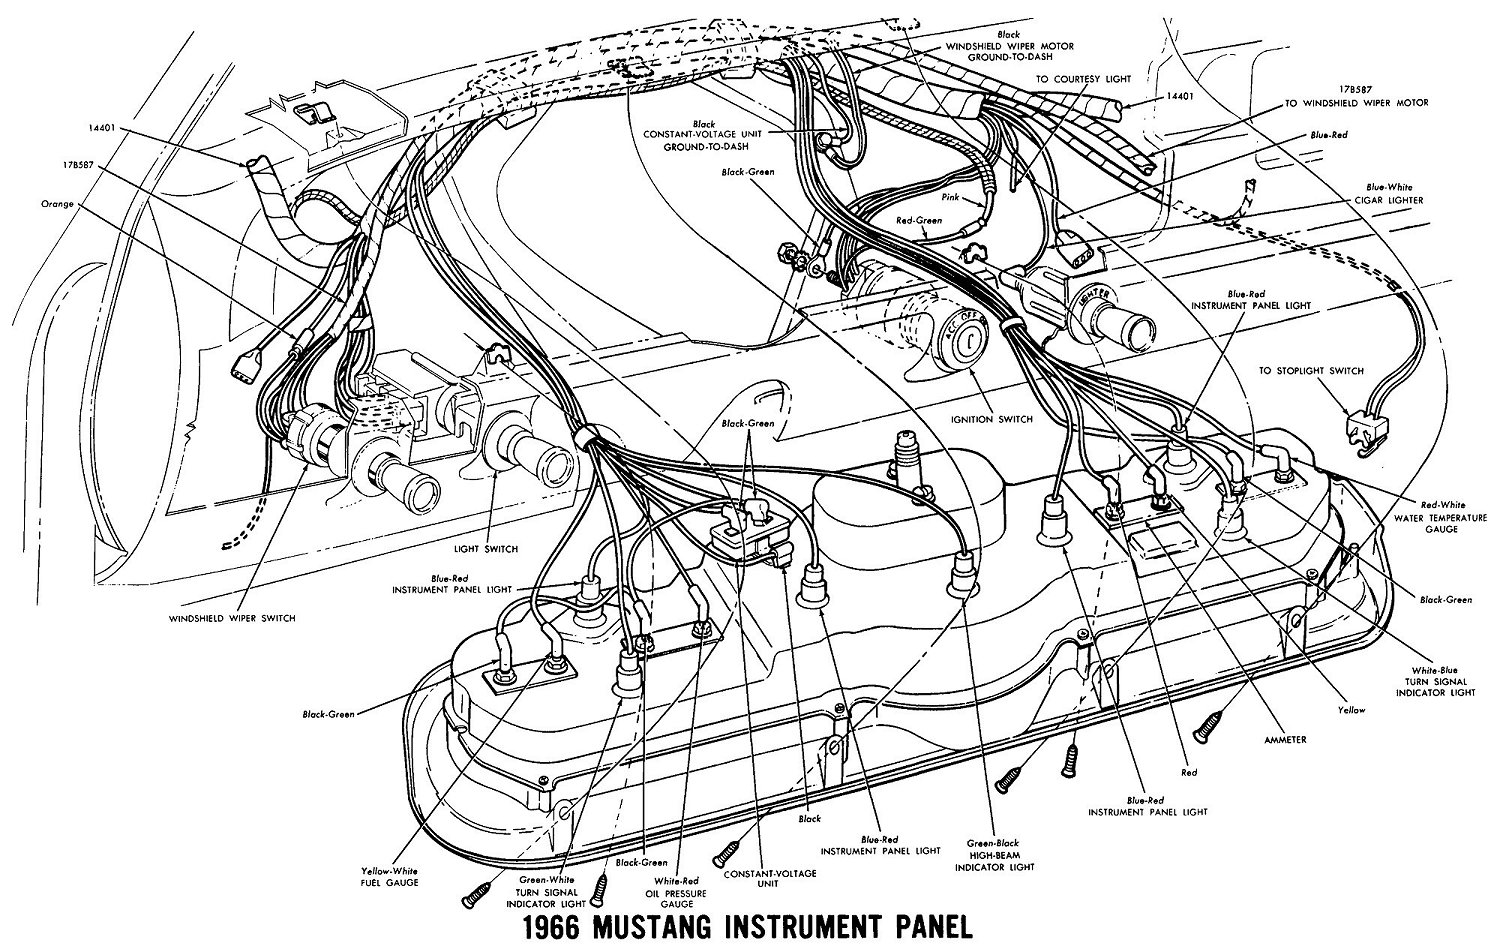 66instr 1966 mustang wiring diagrams average joe restoration 67 mustang dash wiring diagram at virtualis.co